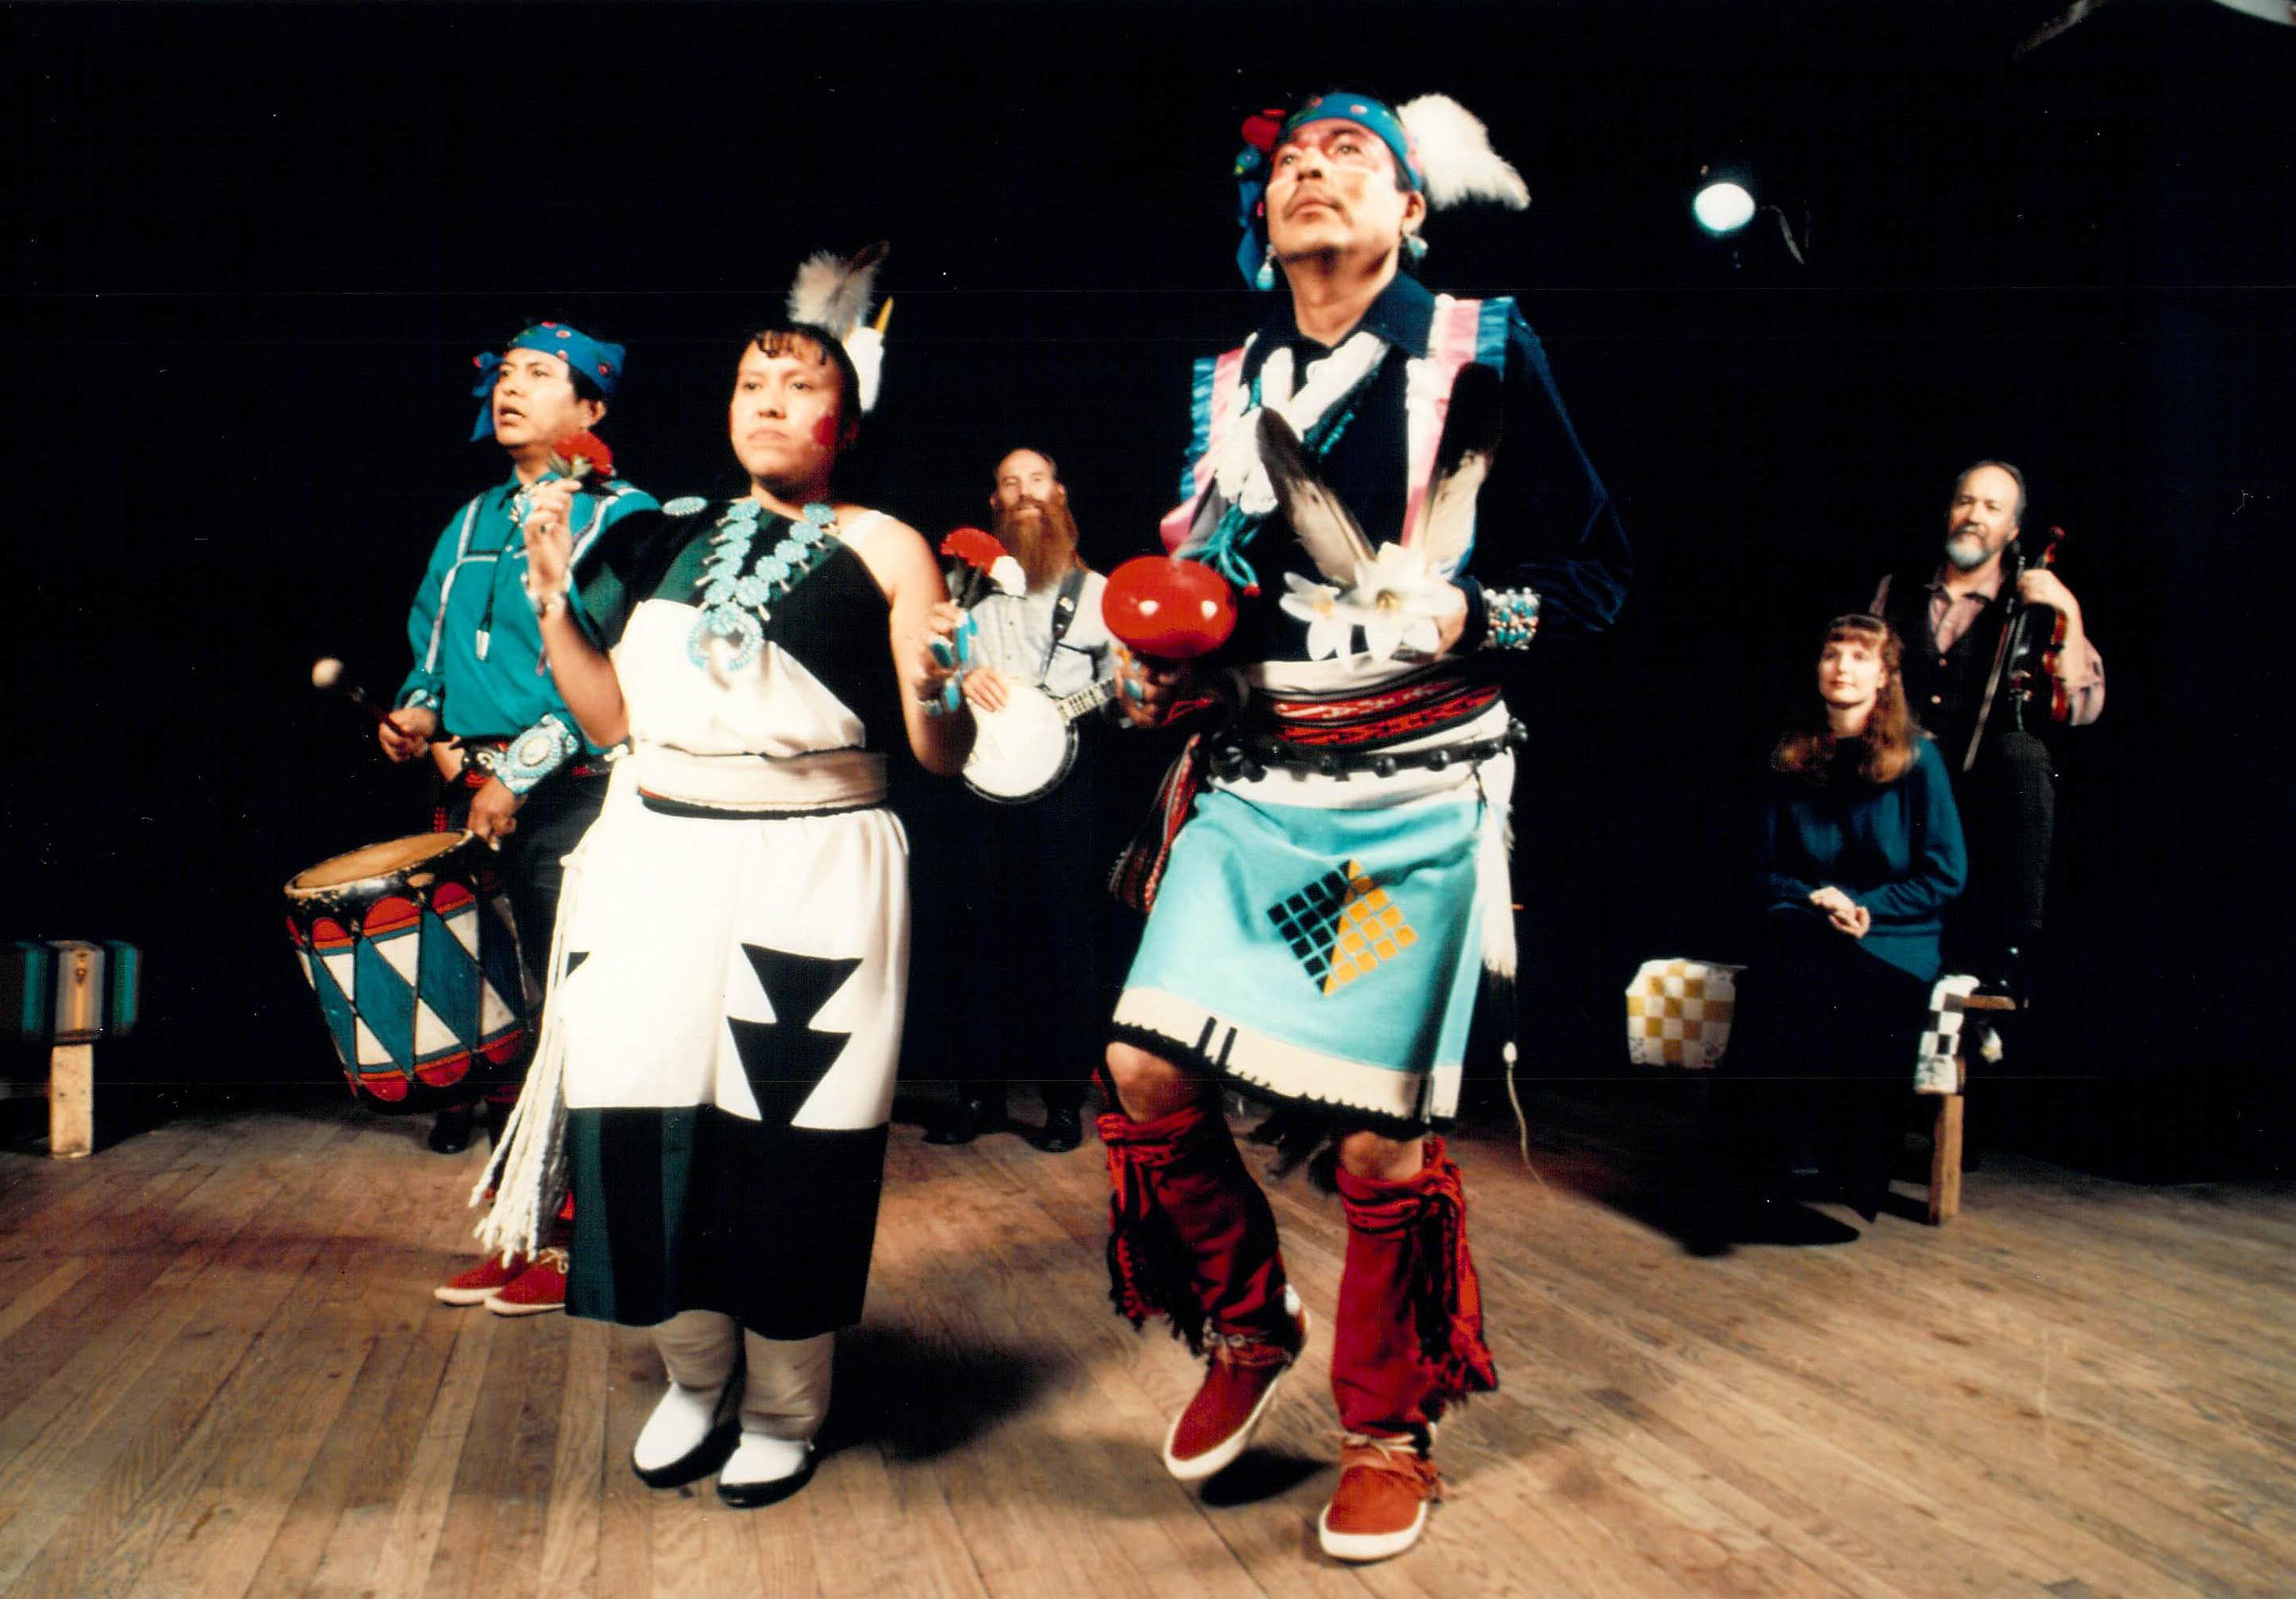 three performers in traditional Native American costume